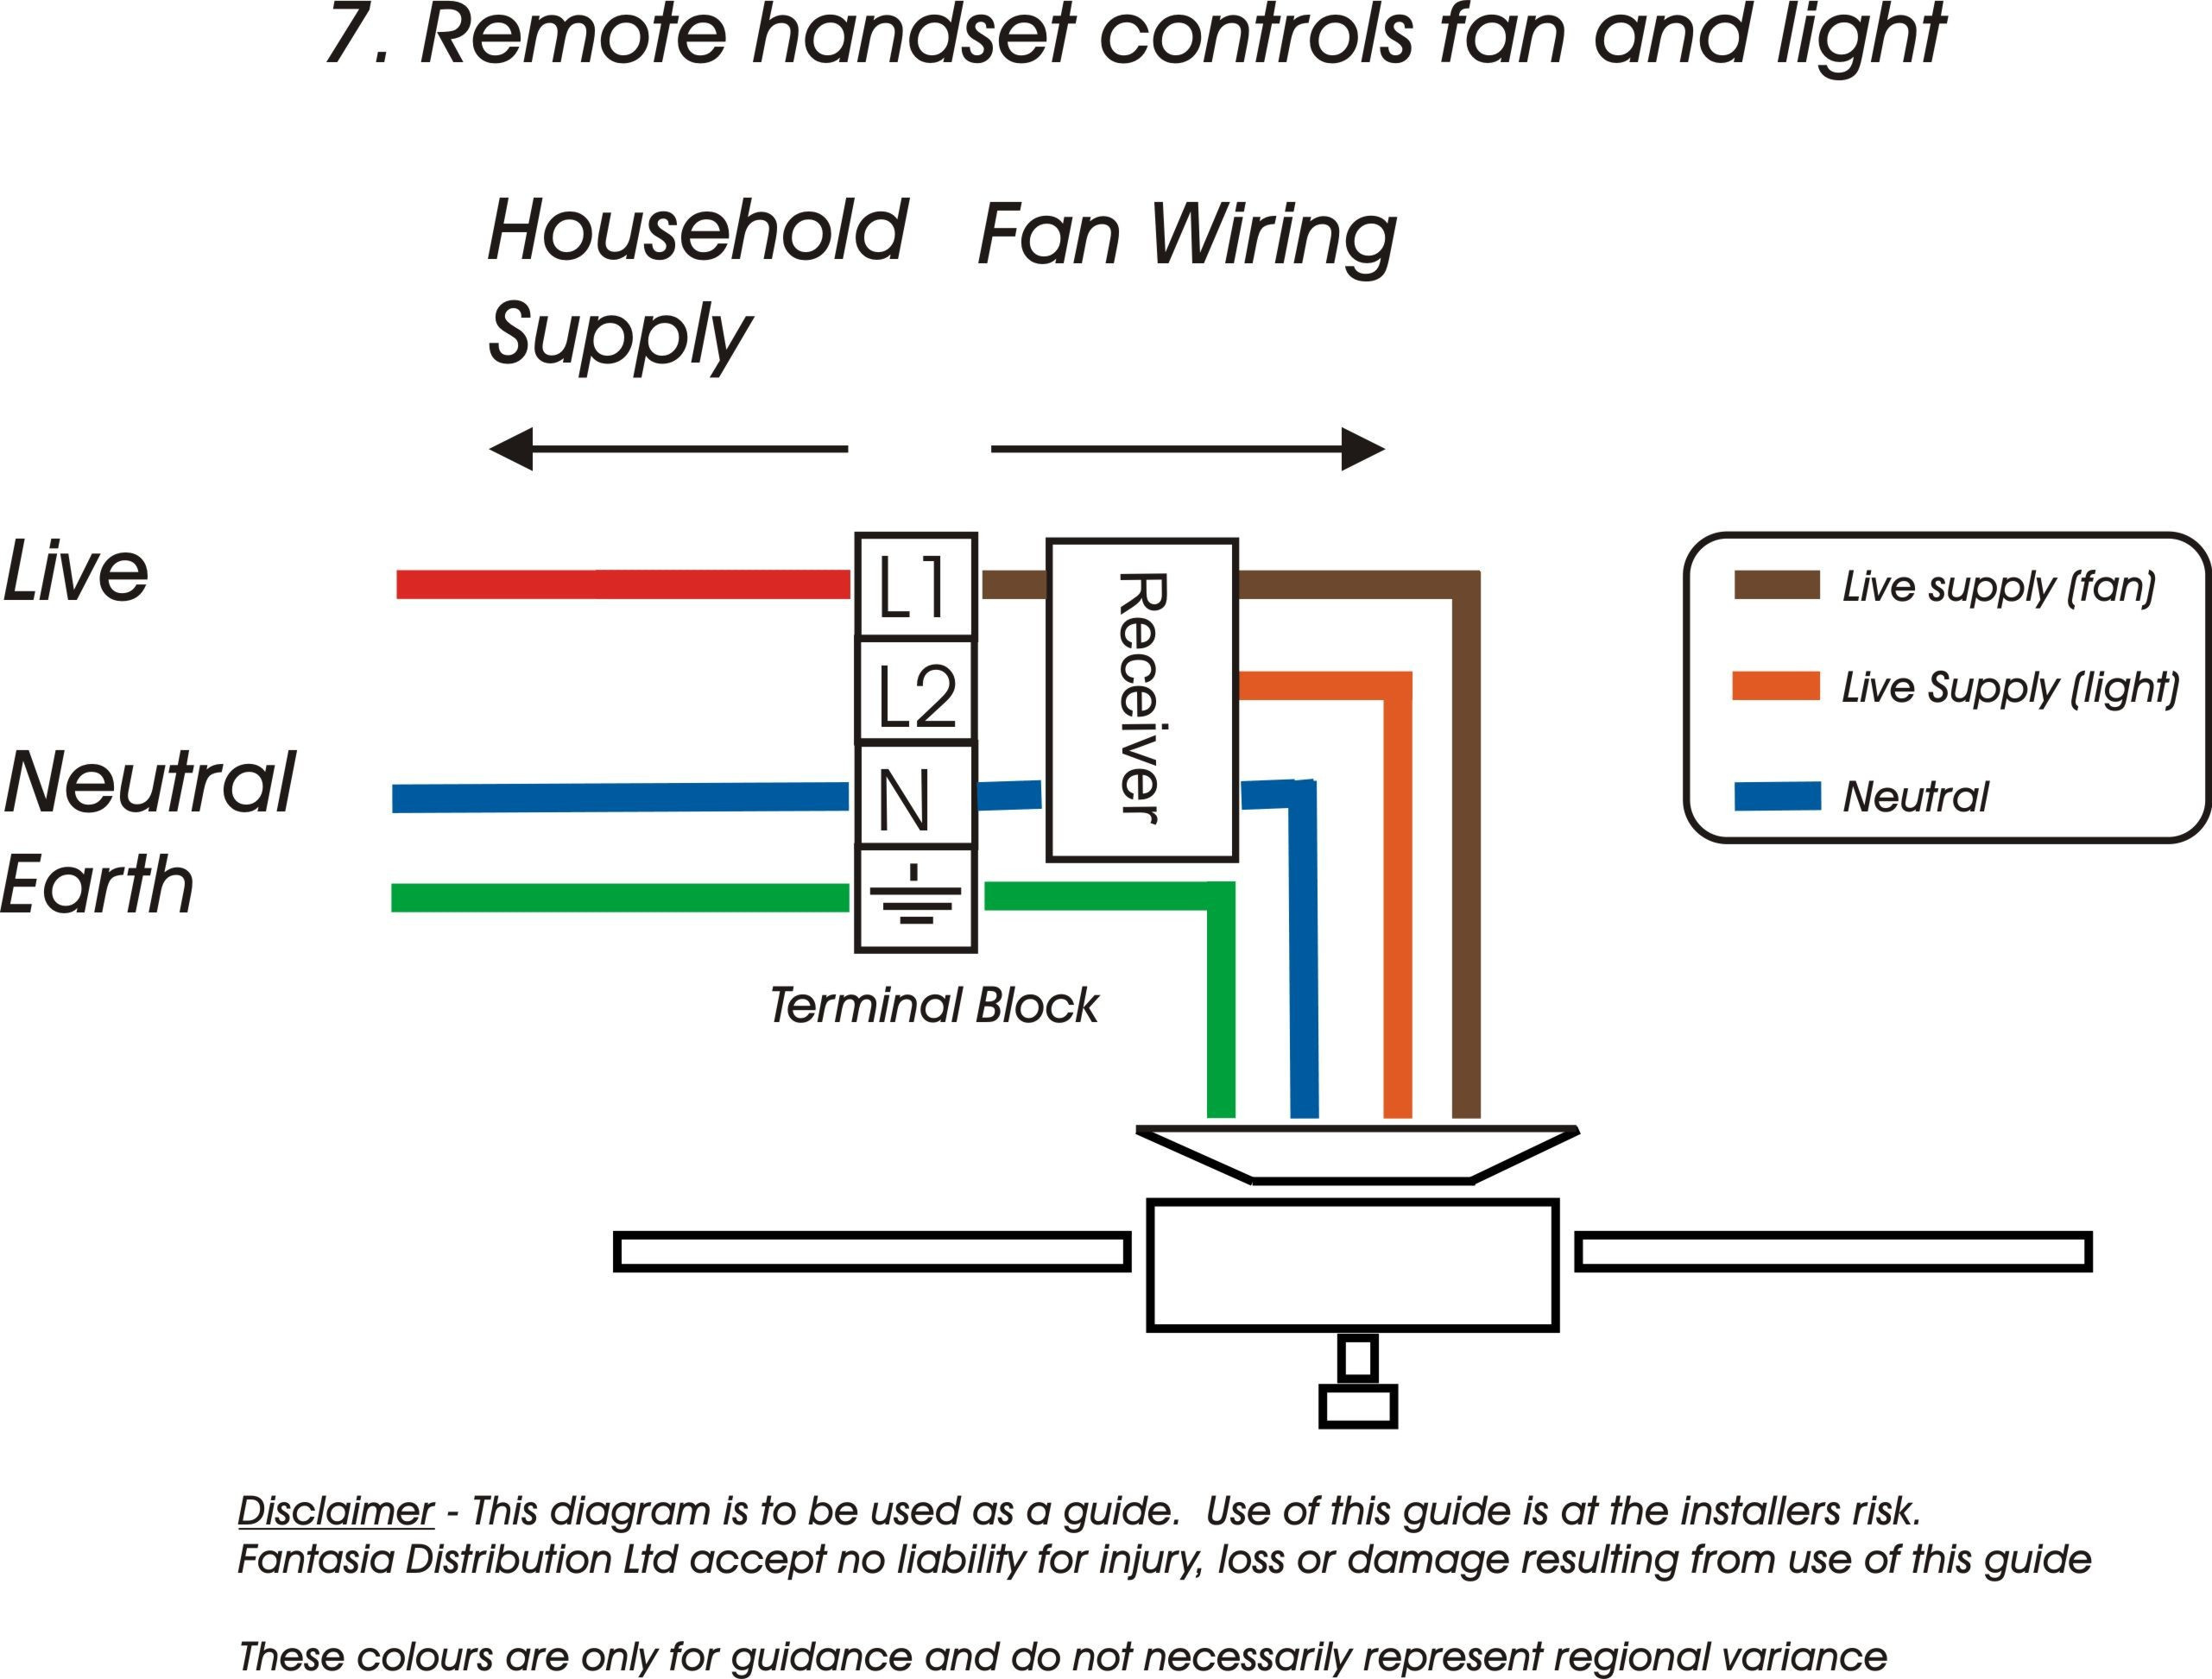 hunter ceiling fan wiring diagram with remote control Download-Hunter Ceiling Fan Wiring Diagram With Remote Control Fresh Famous Endearing Enchanting Harbor Breeze 11-f